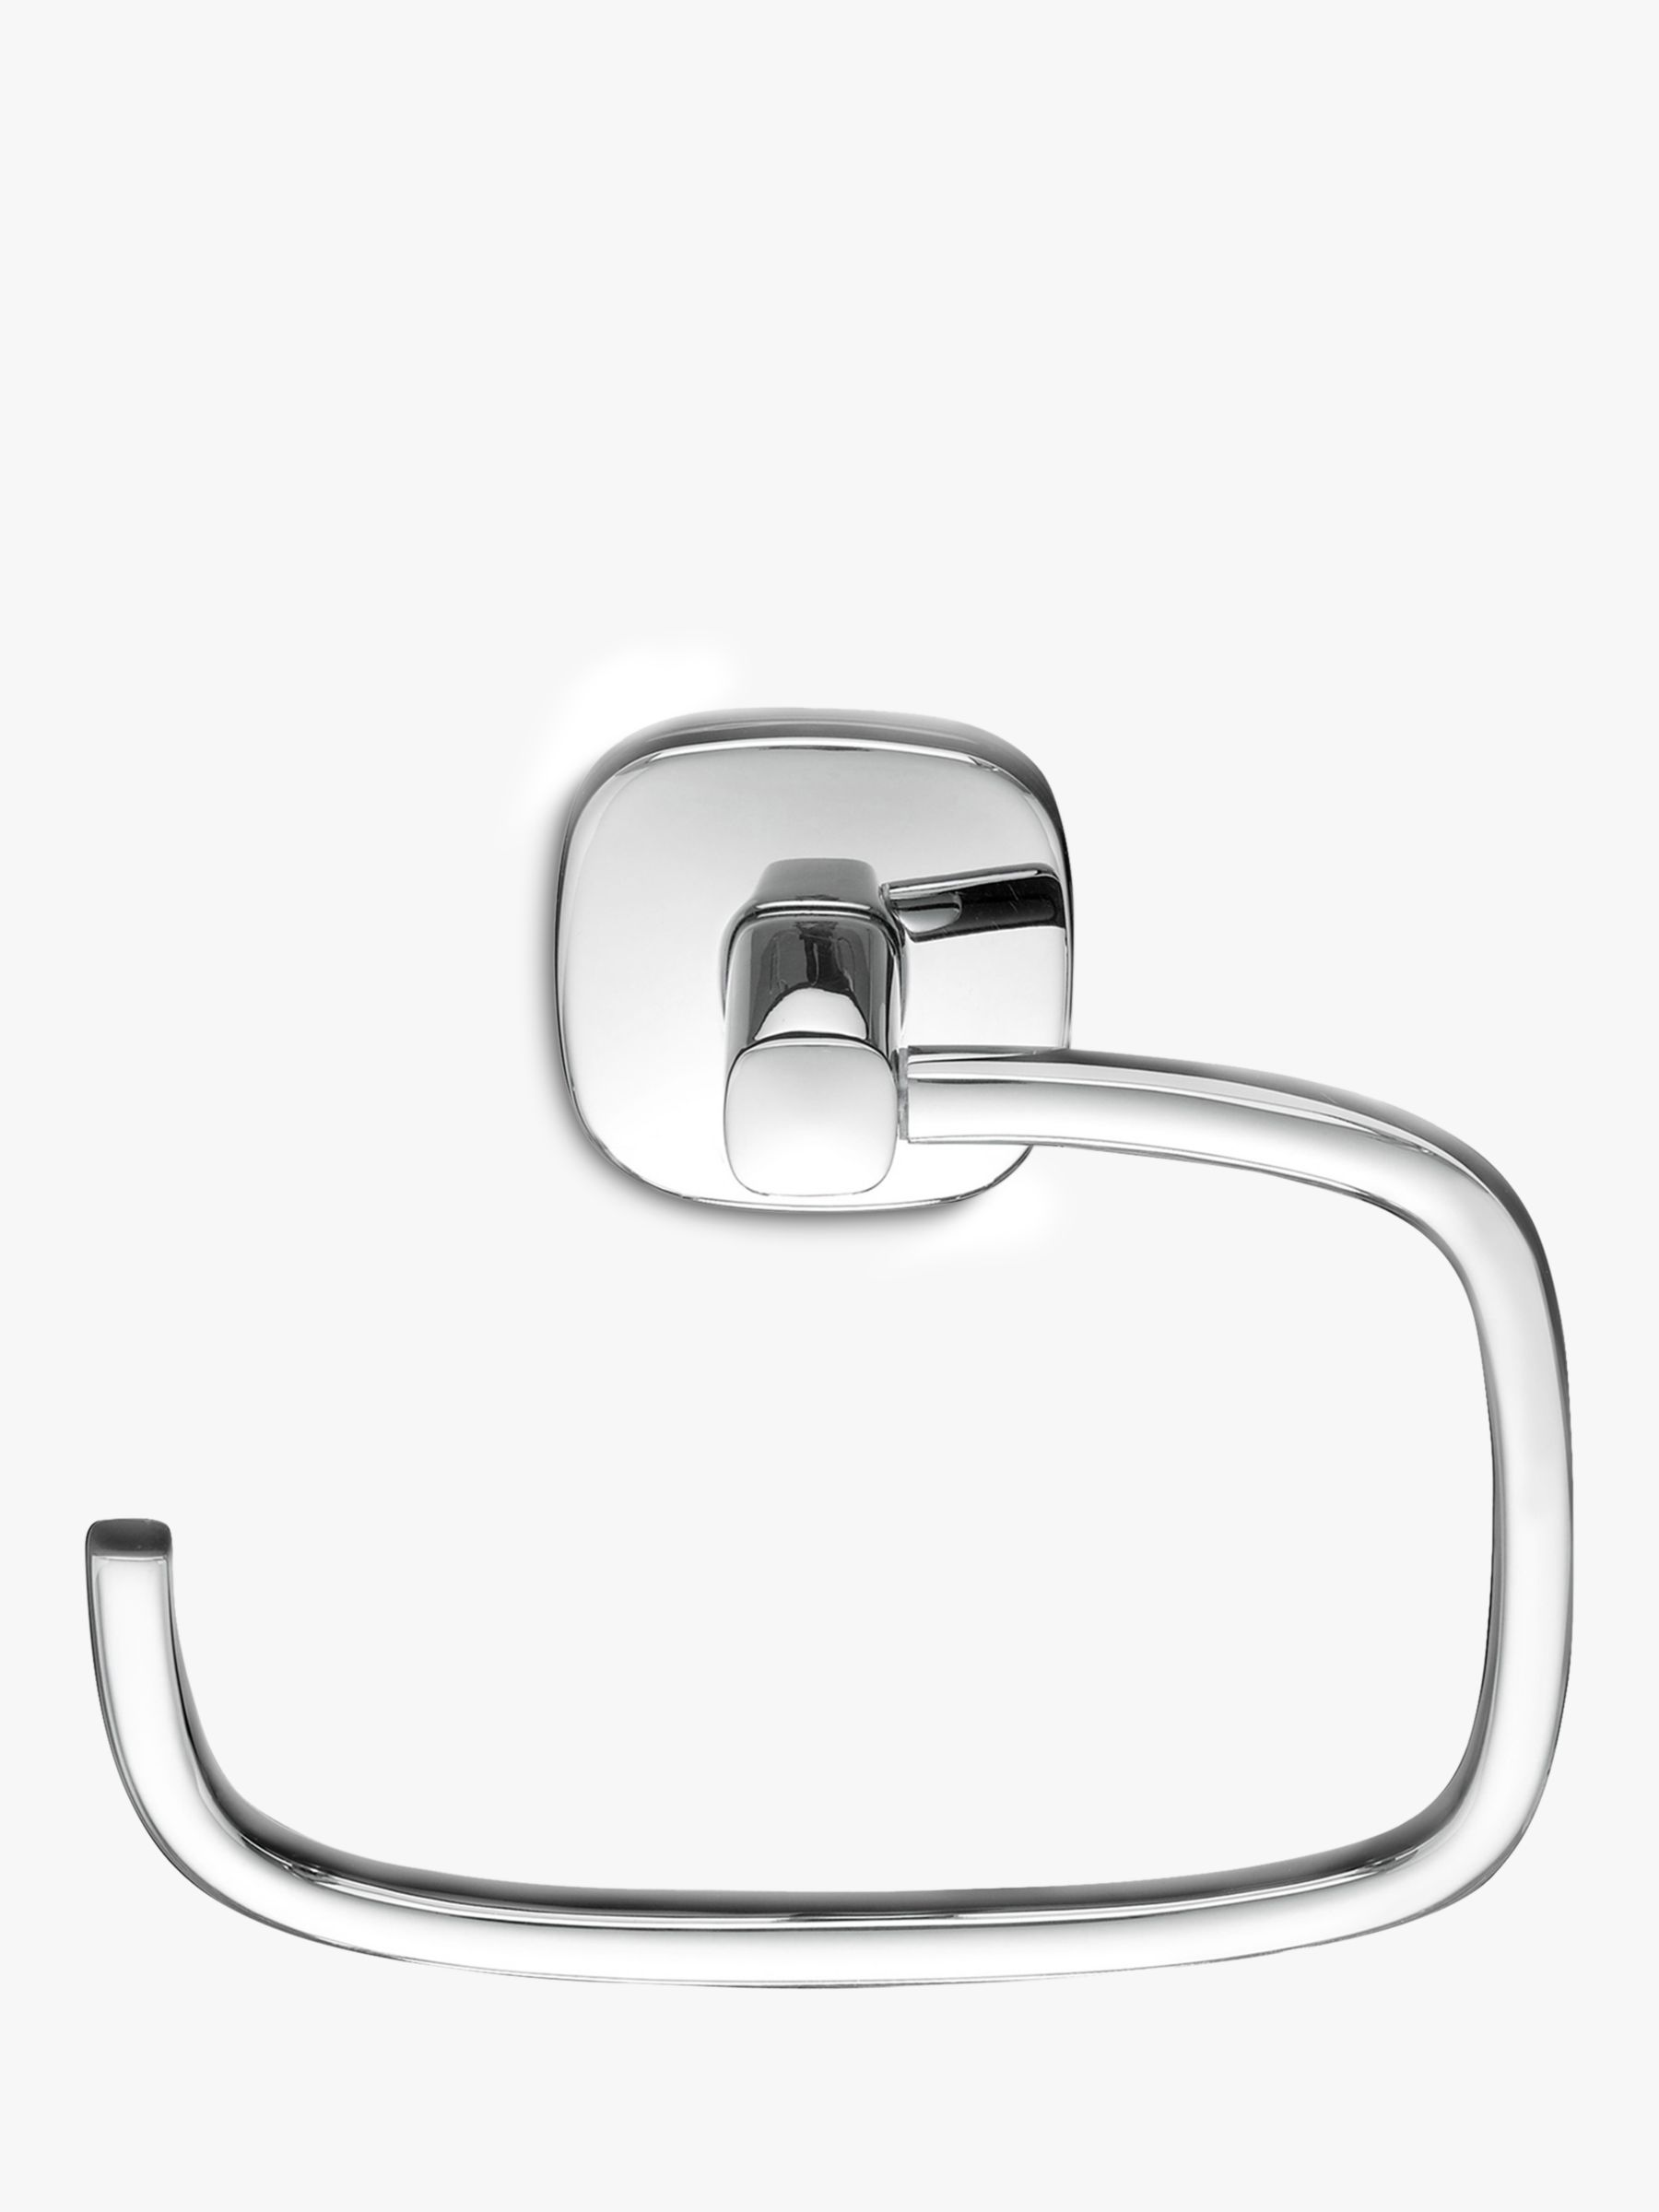 Robert Welch Burford Swing Toilet Roll Holder, Stainless Steel at ...